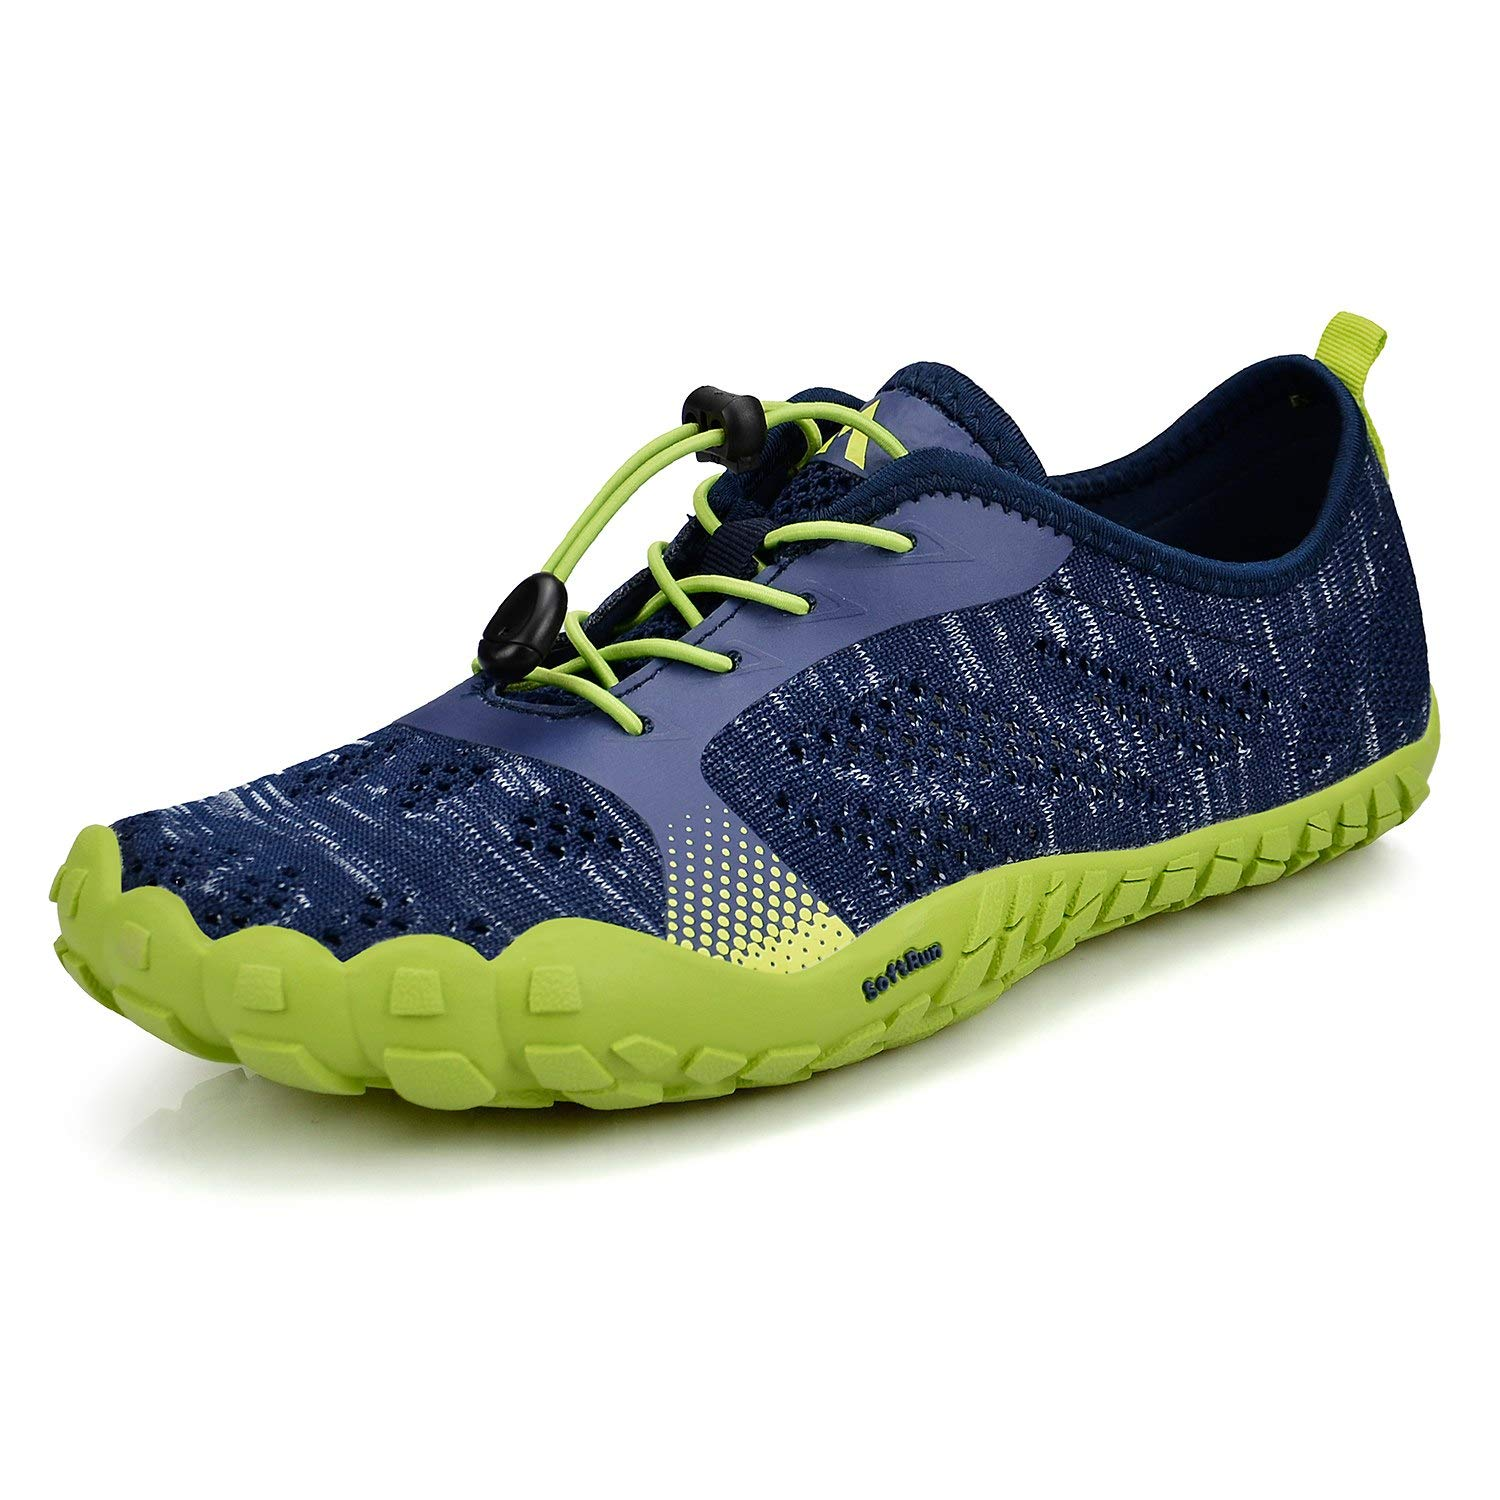 Troadlop Minimalist Running Shoes for Men Hiking Barefoot Outdoor Training Camp Water Shoes Blue6.5